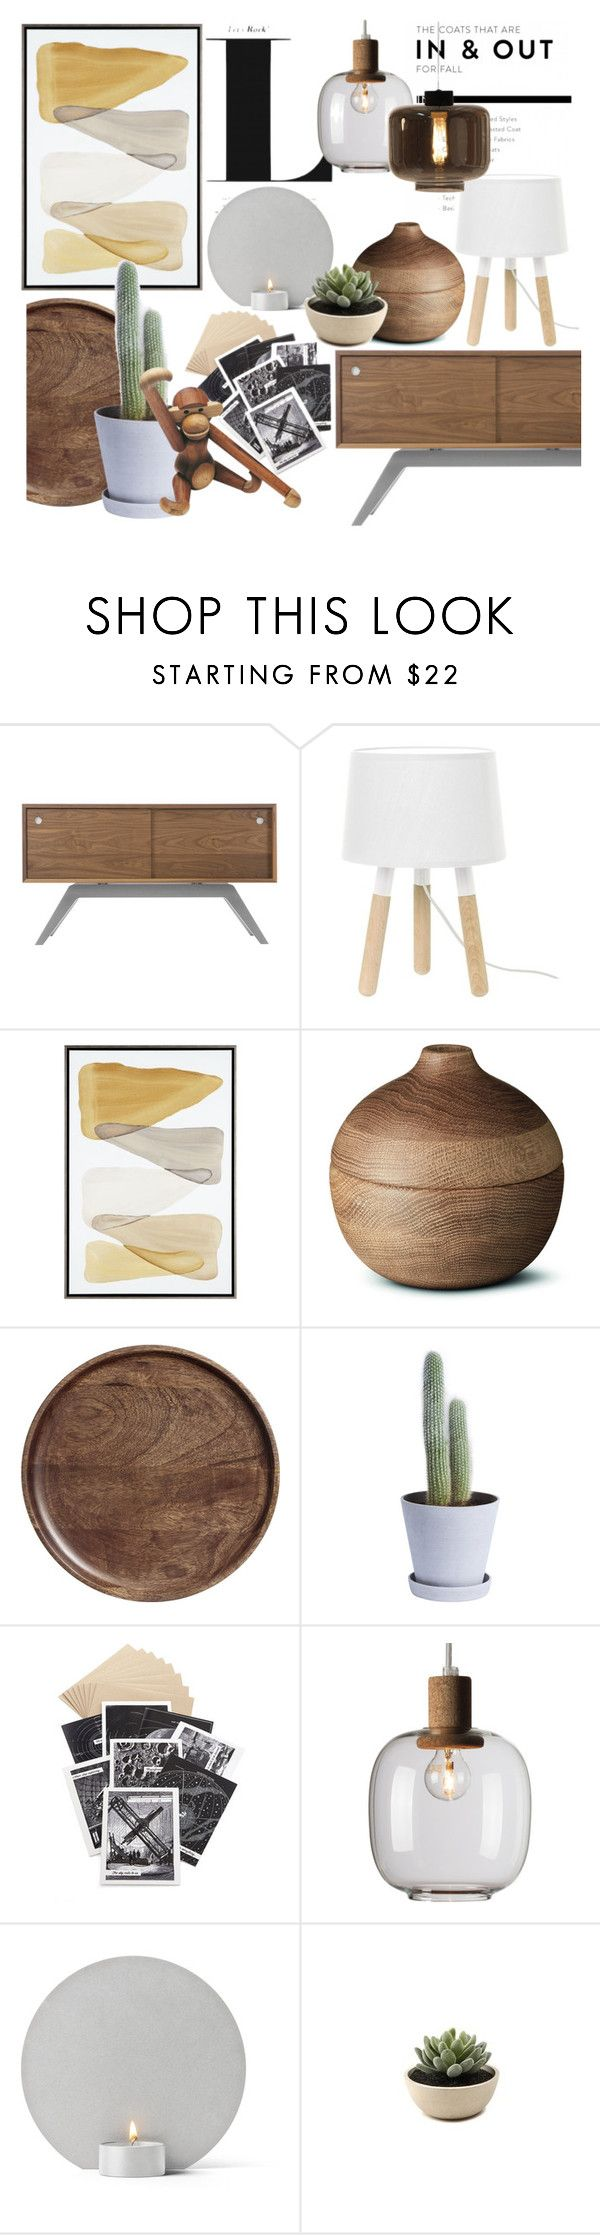 Quot Earthy Colors Quot By Sofiehoff Liked On Polyvore Featuring Interior Interiors Interior Design